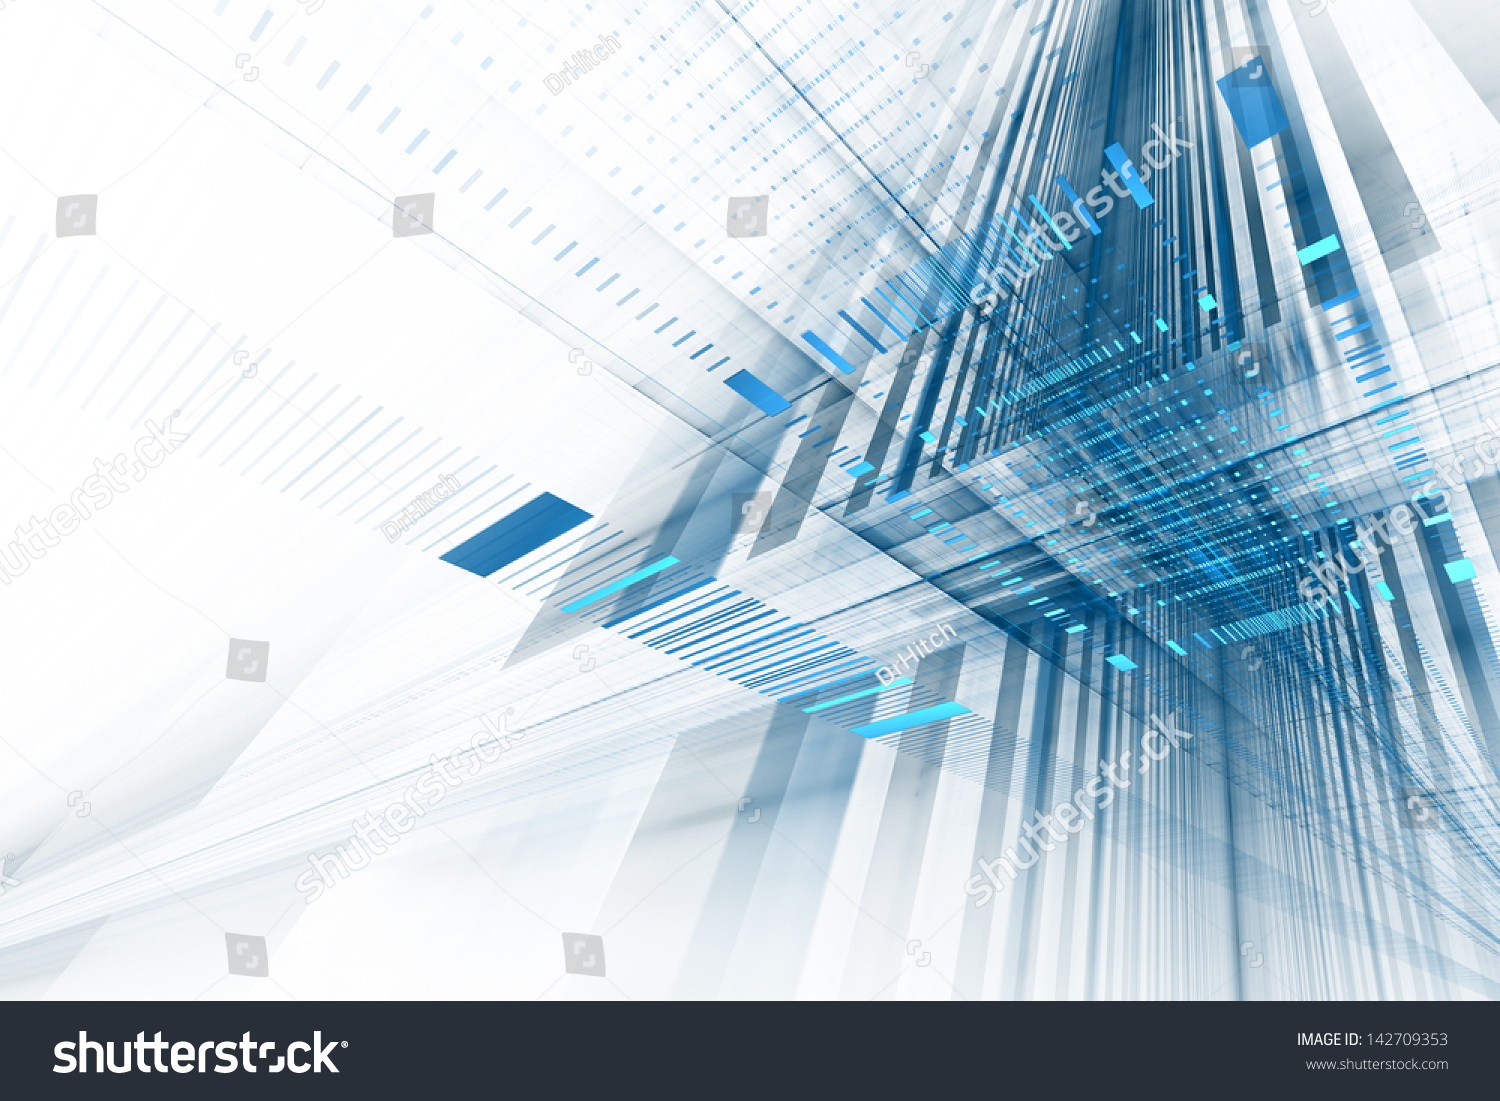 Technology Abstract Background Stock Illustration: Abstract Business Science Technology Background Stock